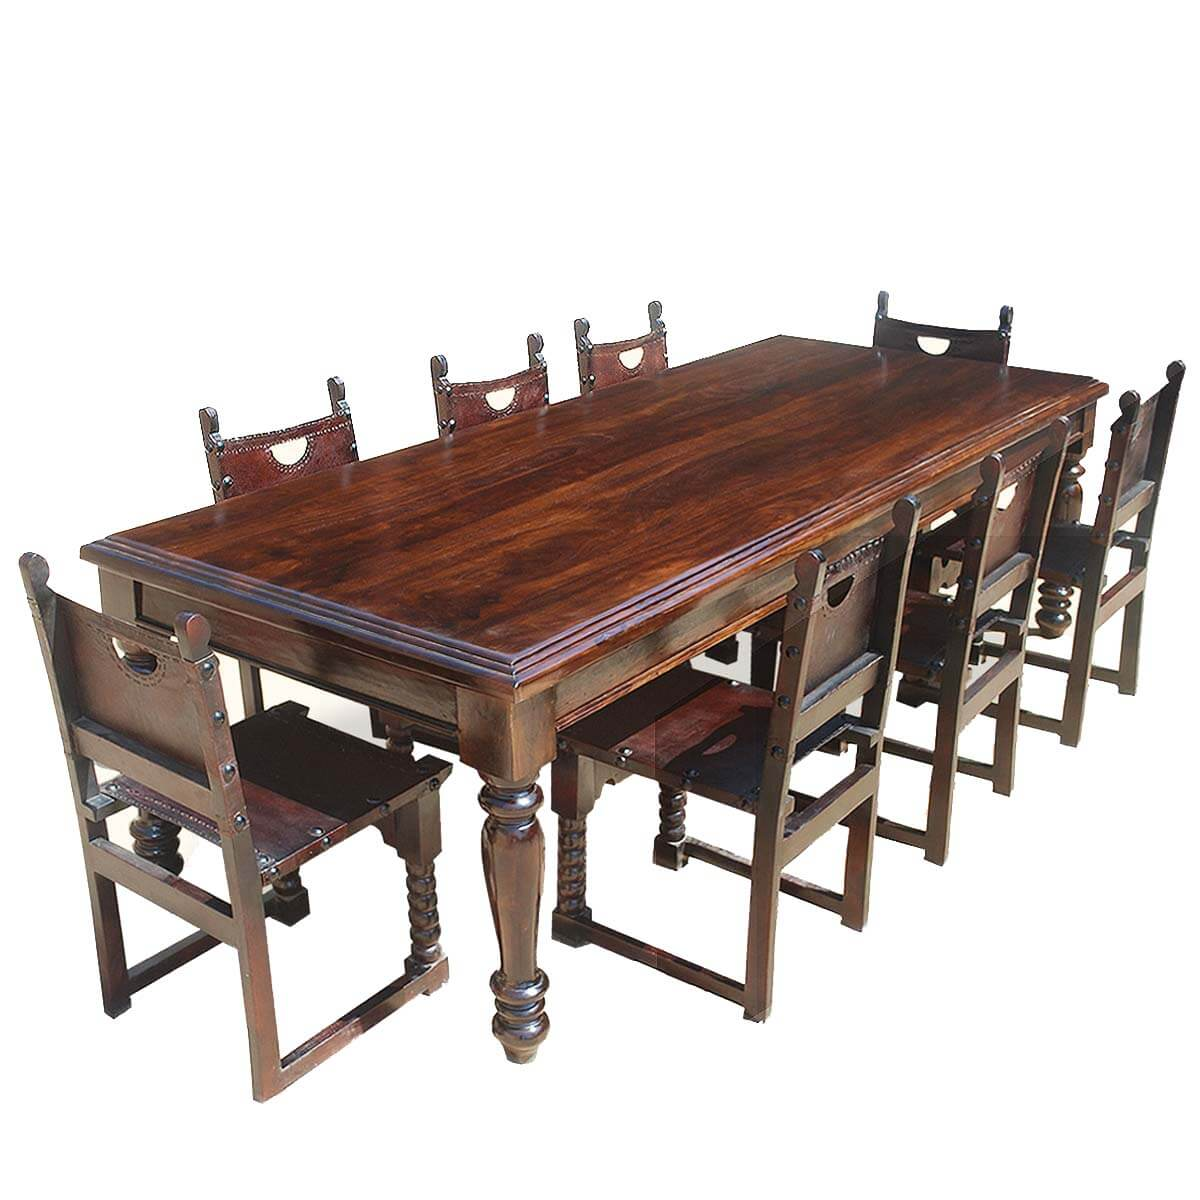 Large rustic solid wood dining room table w 8 leather for Dining table and 8 chairs